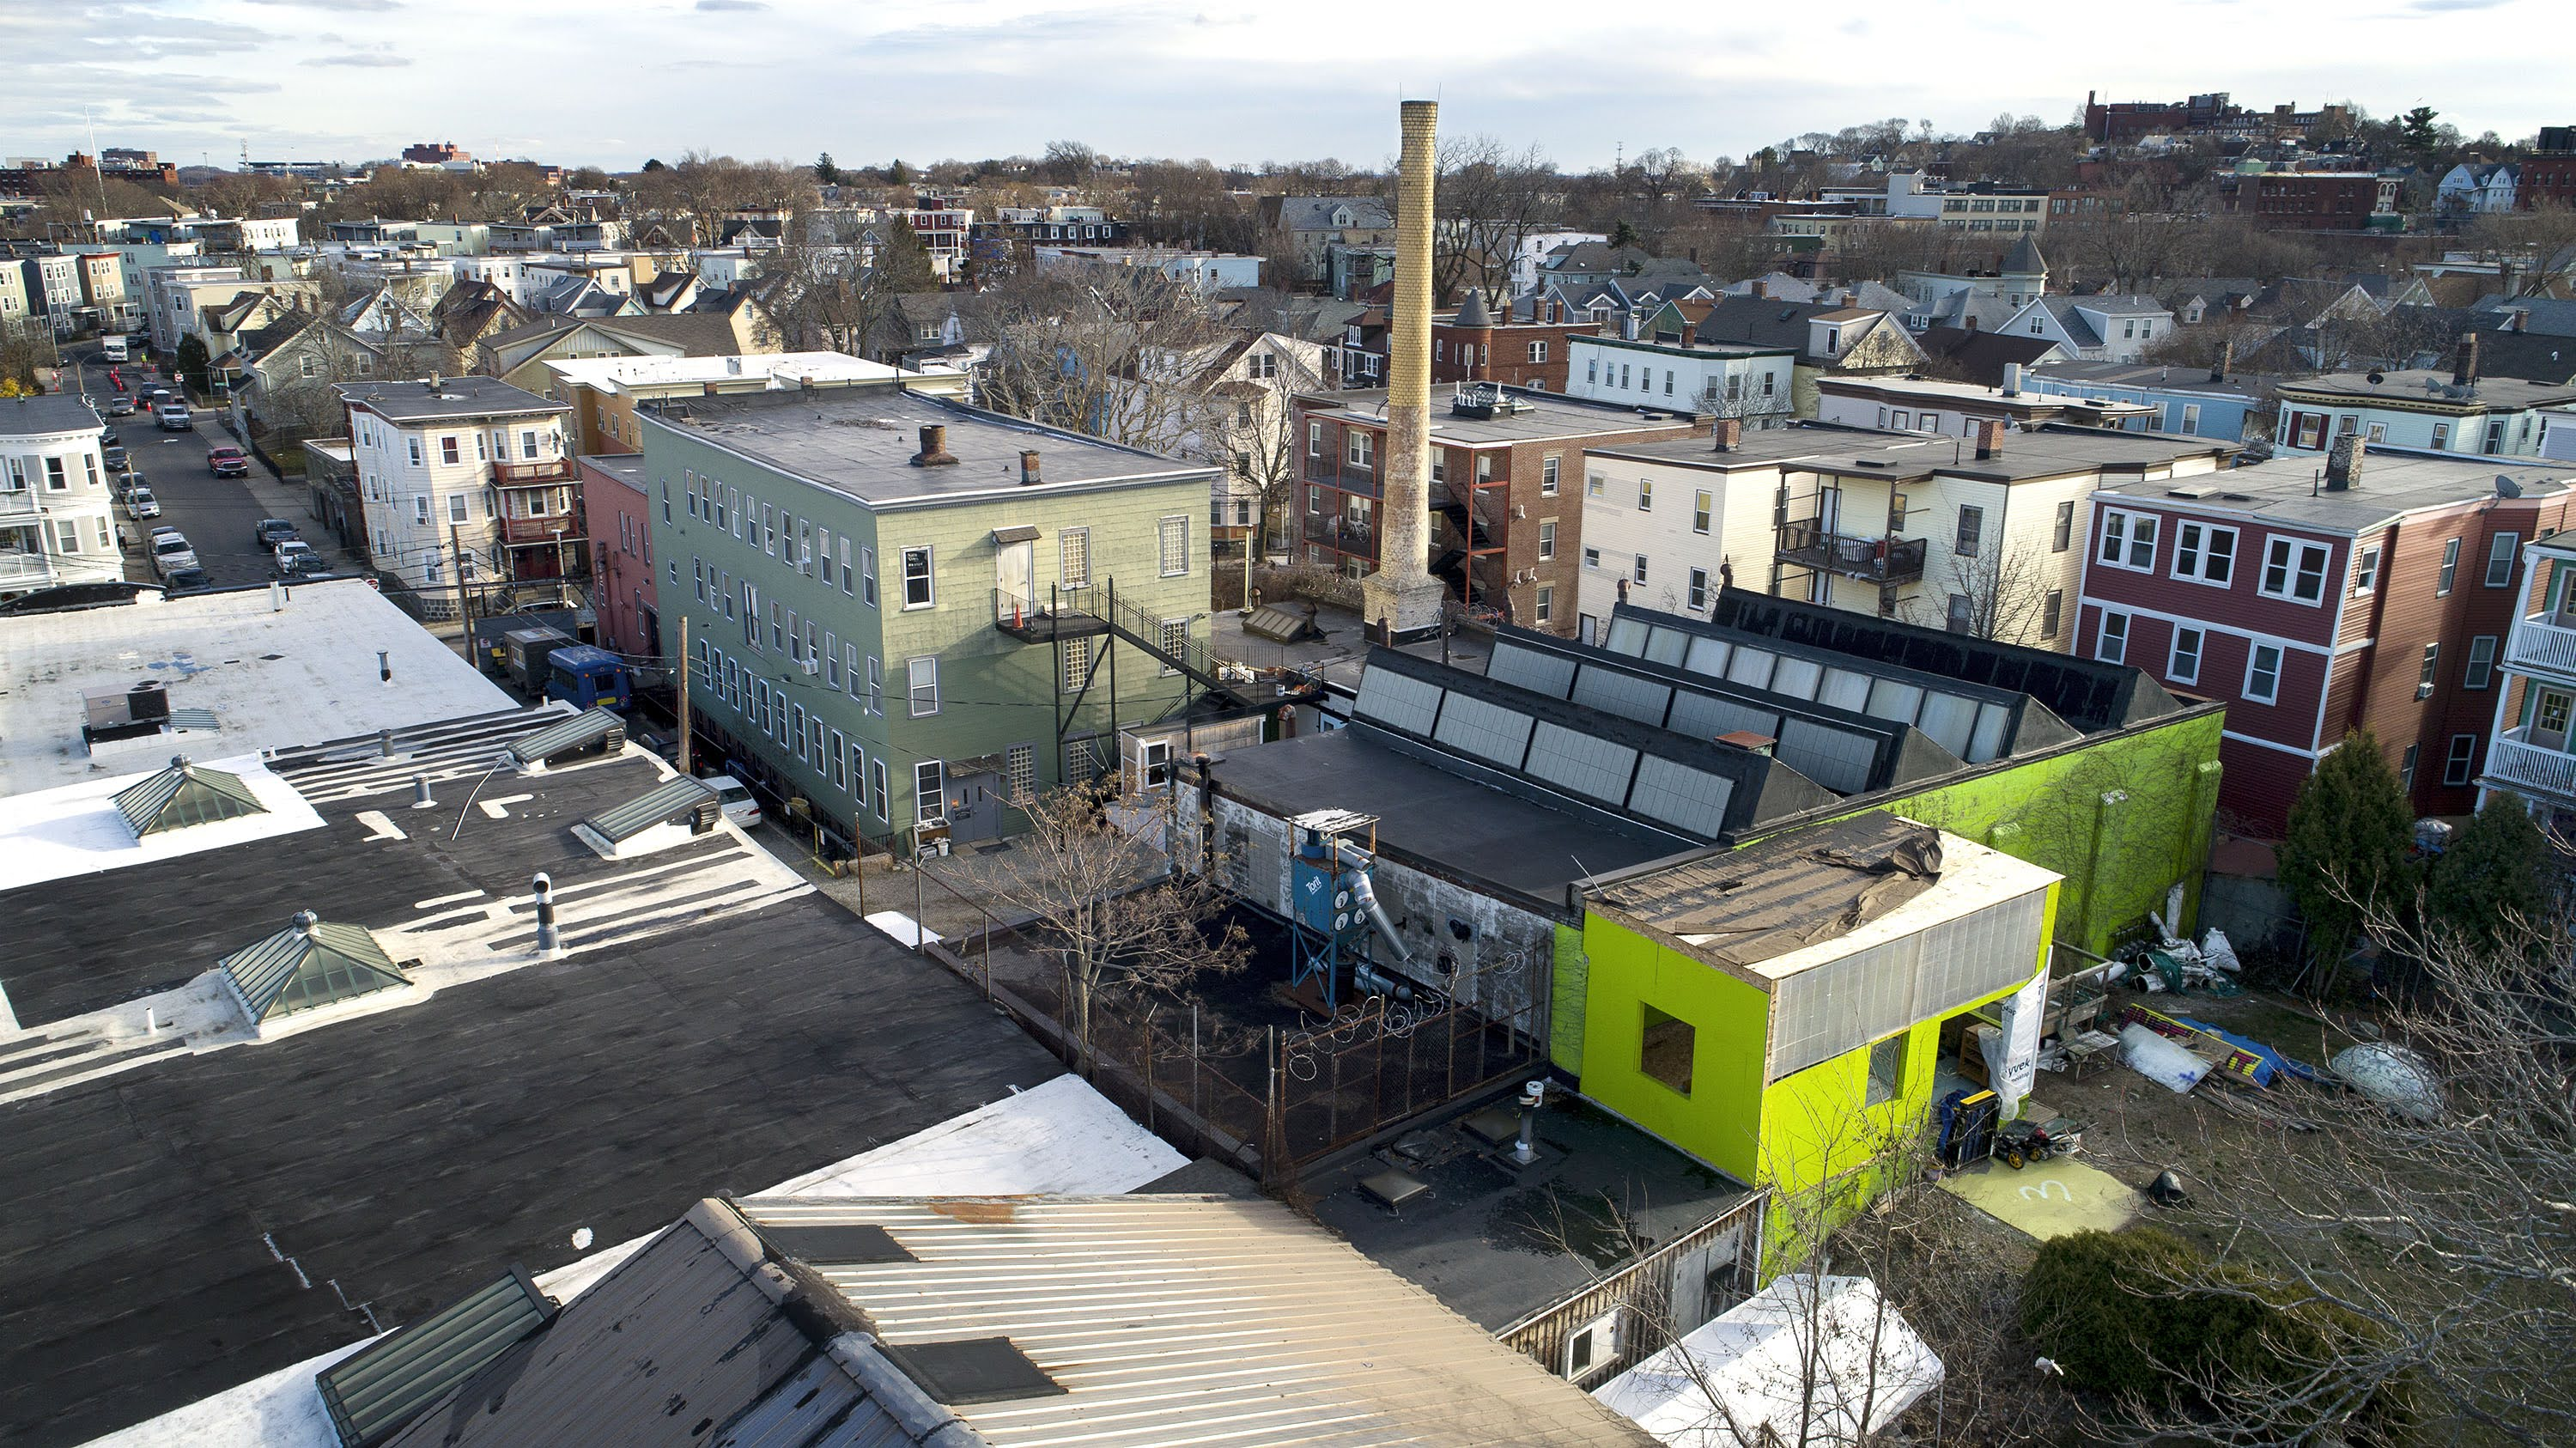 Humphreys Street Studios, with their landmark chimney and mostly green painted buildings, which were once a laundry facility in Dorchester, Mass. (Robin Lubbock/WBUR)